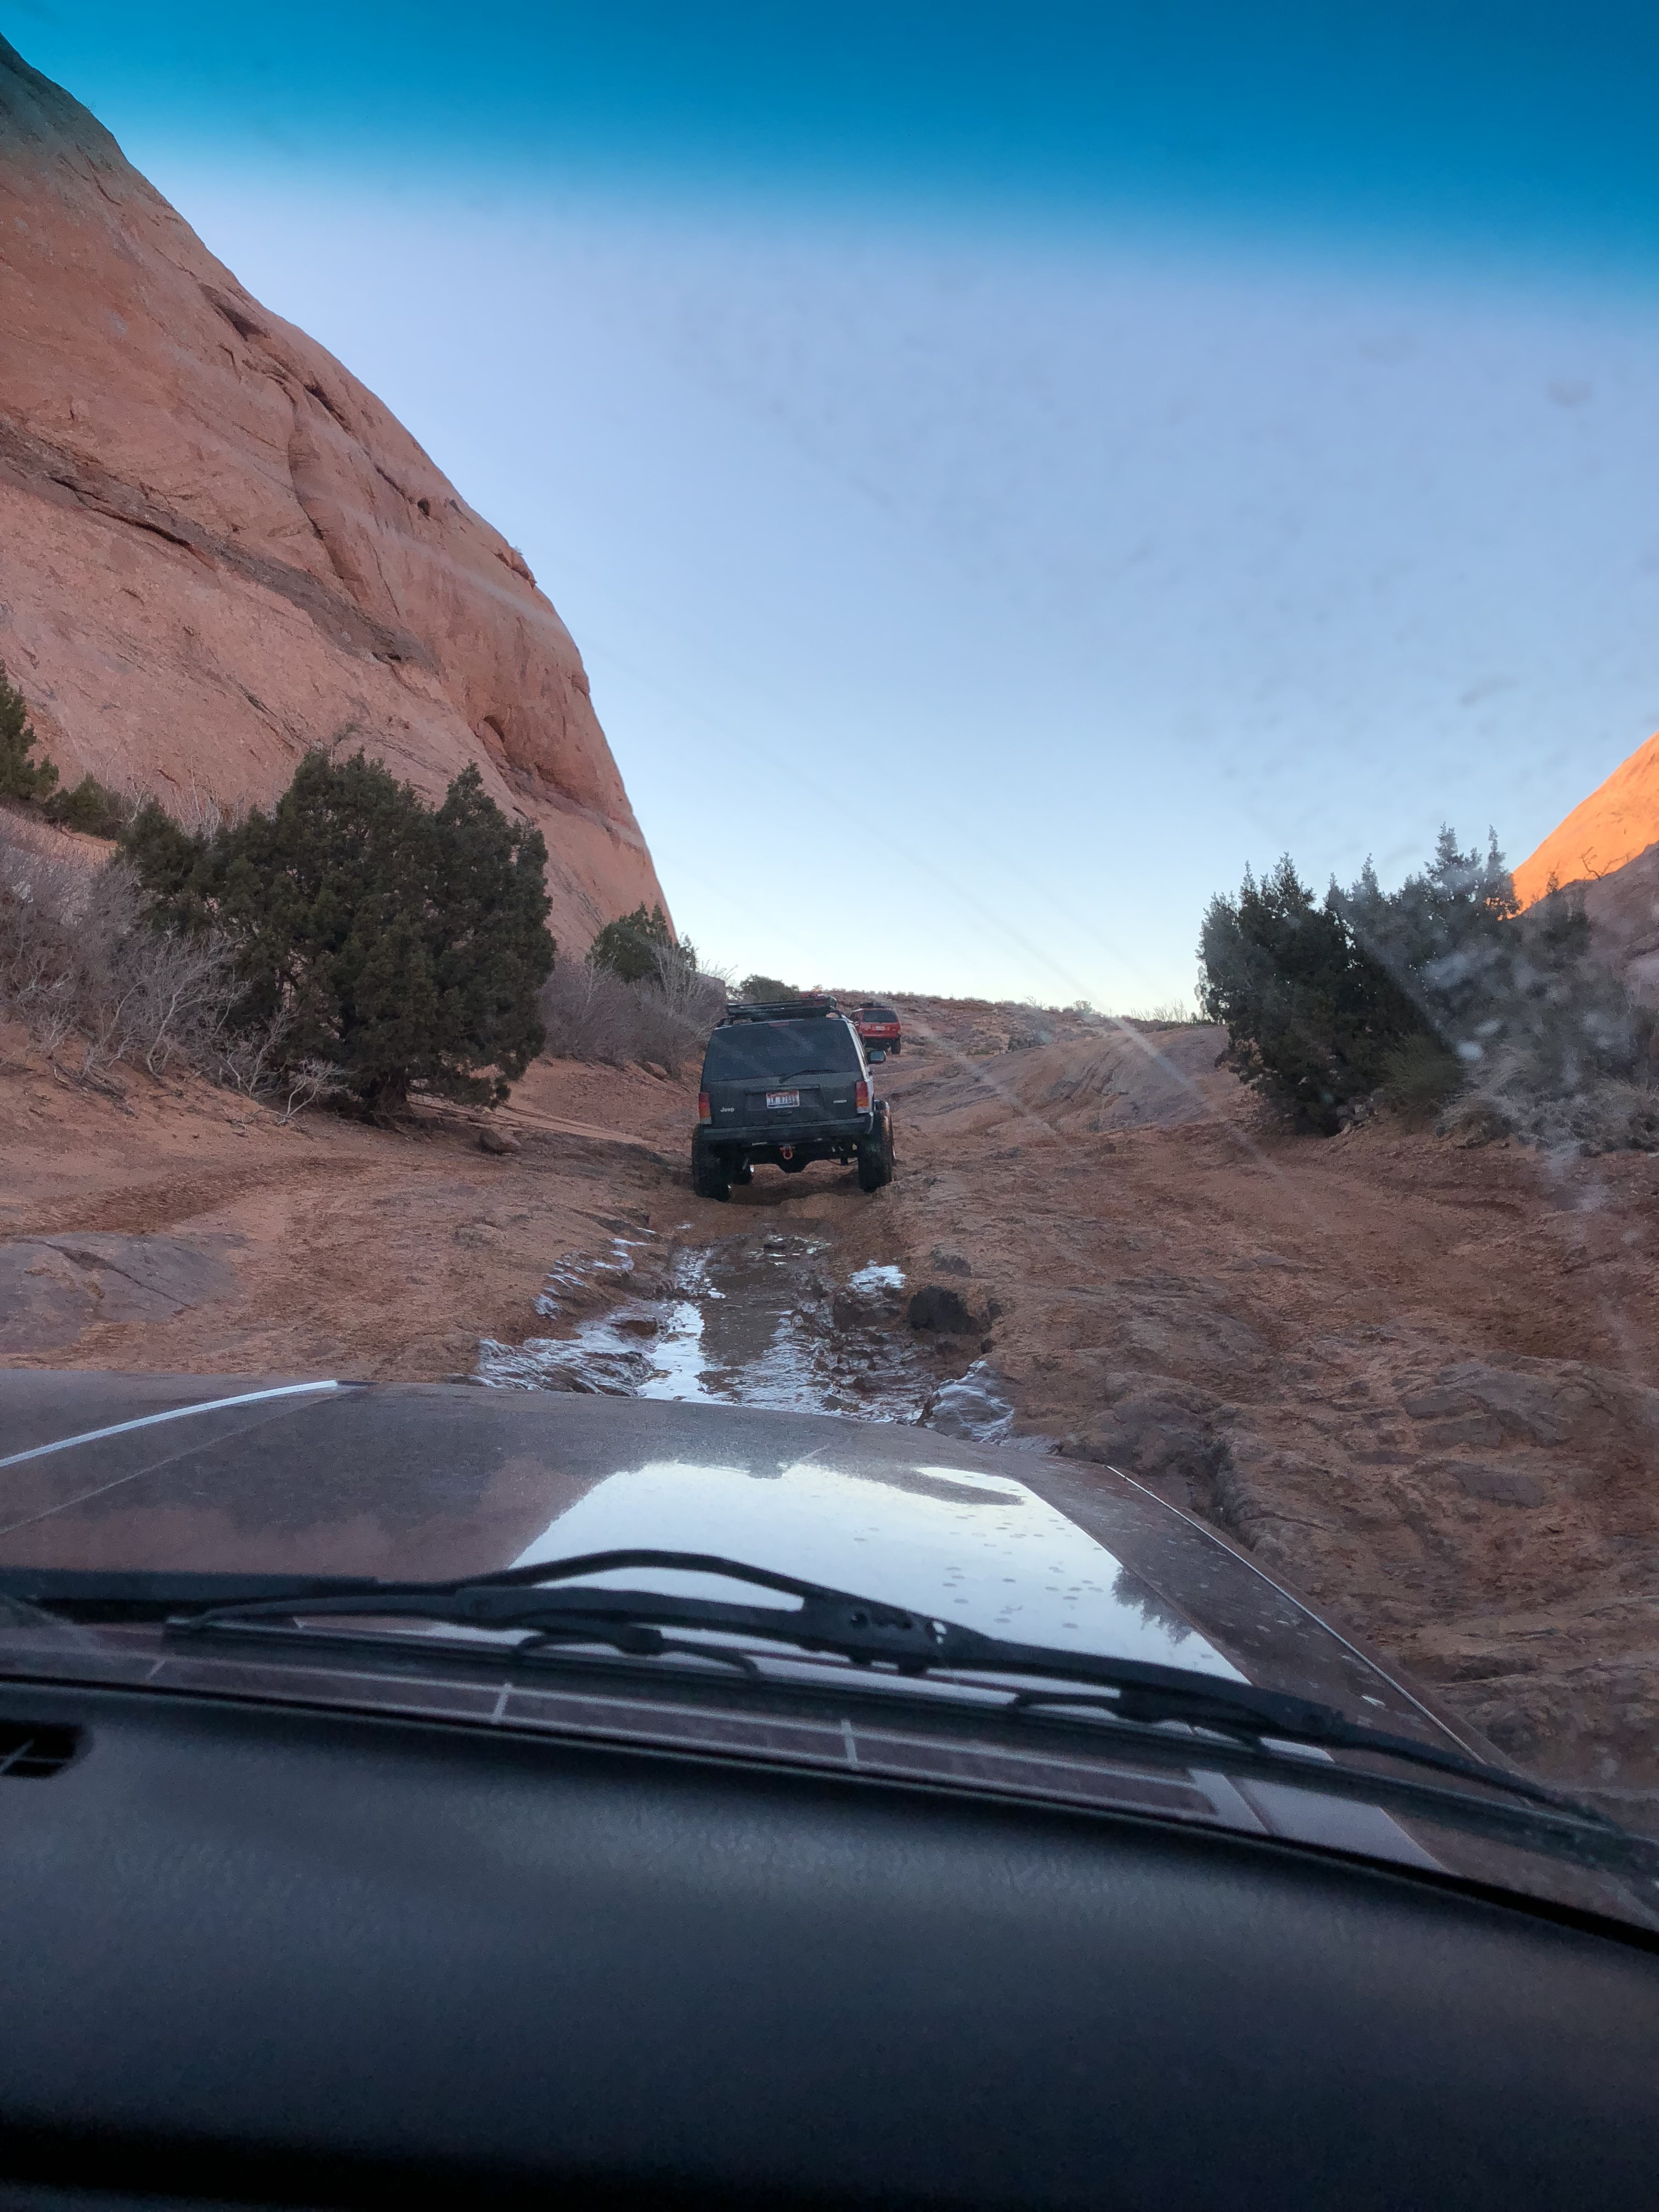 Hell's Revenge 4X4 Trail in Moab, UT - Jeep Guide // Hey There, Chelsie